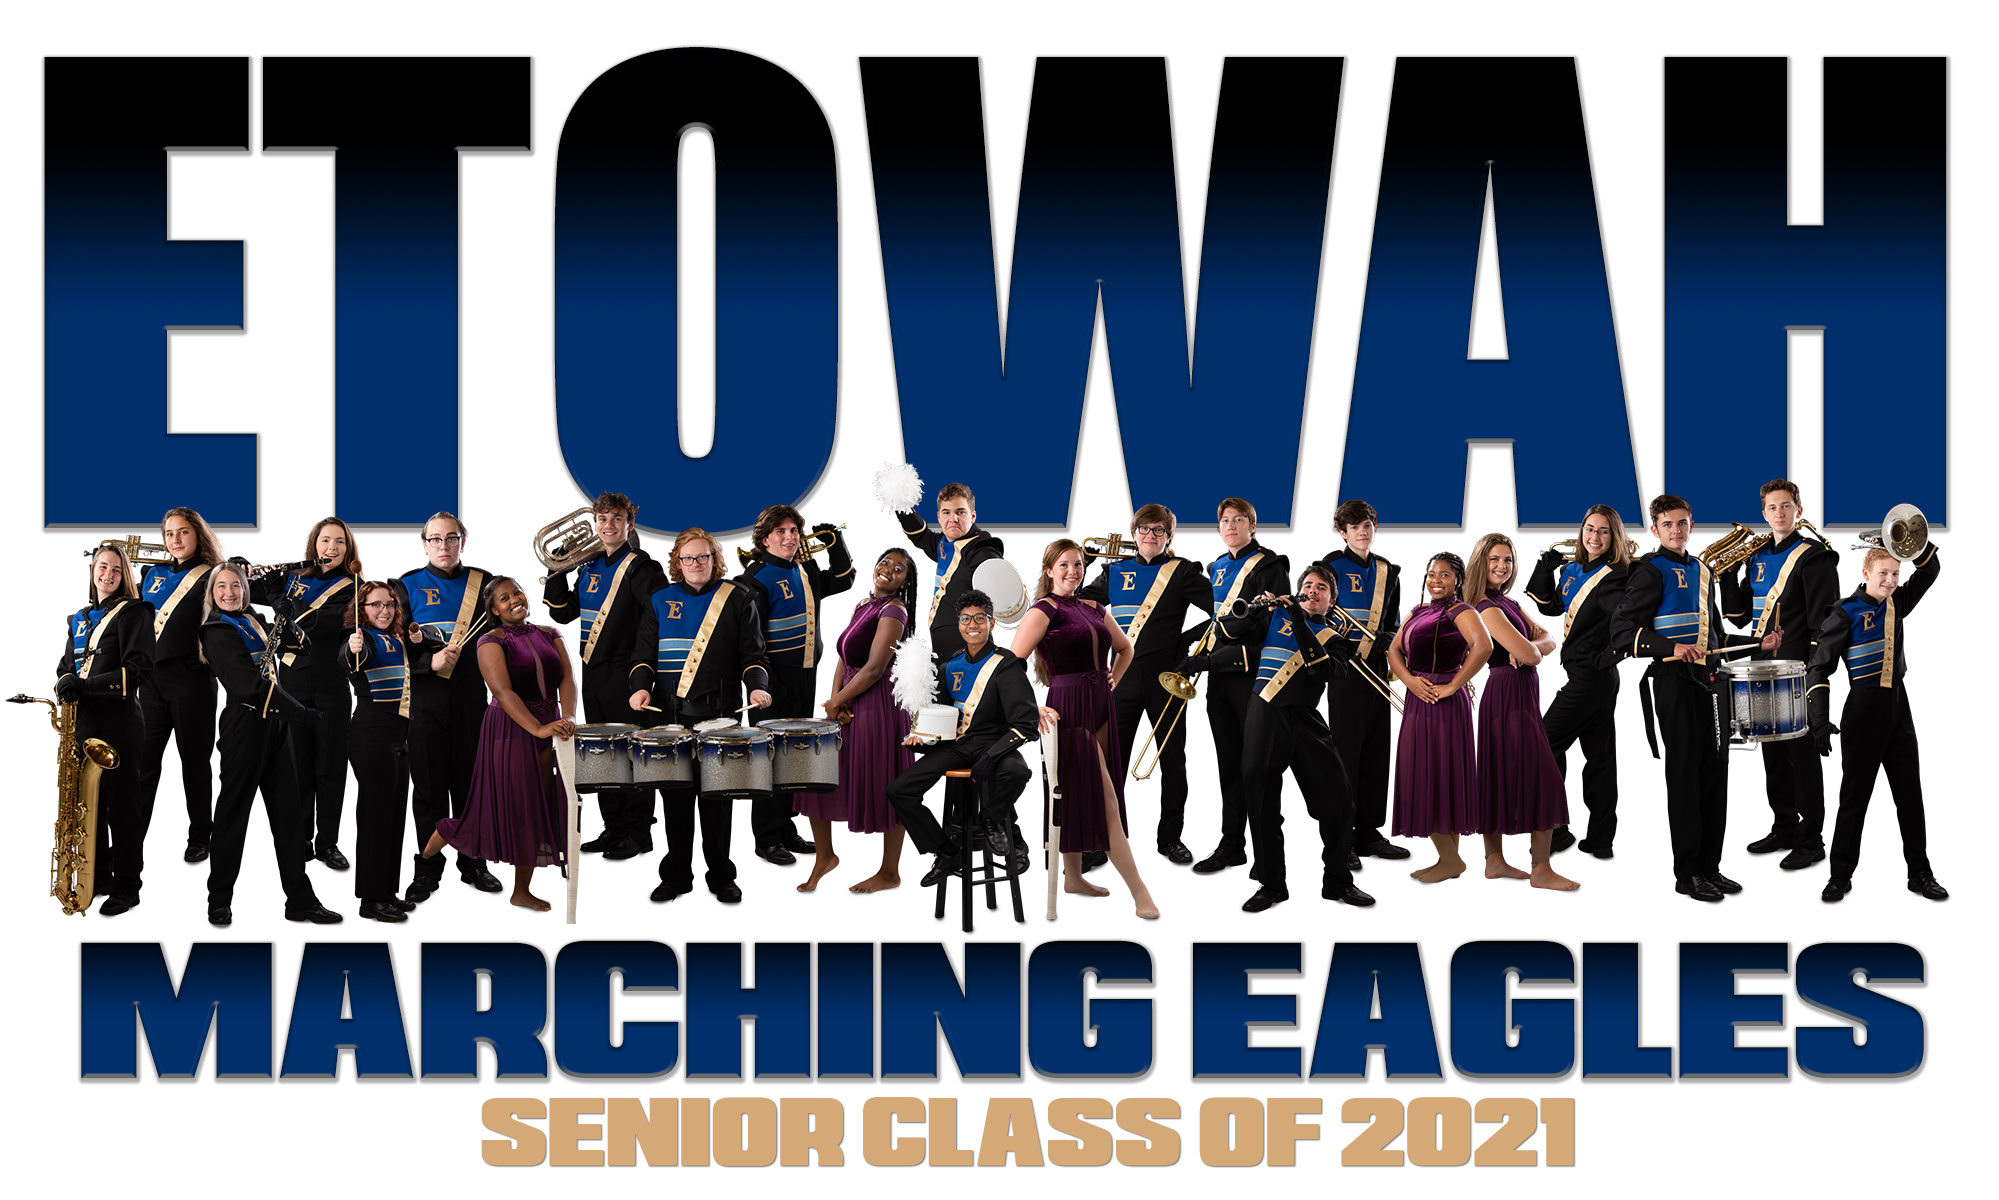 Etowah Eagle Band